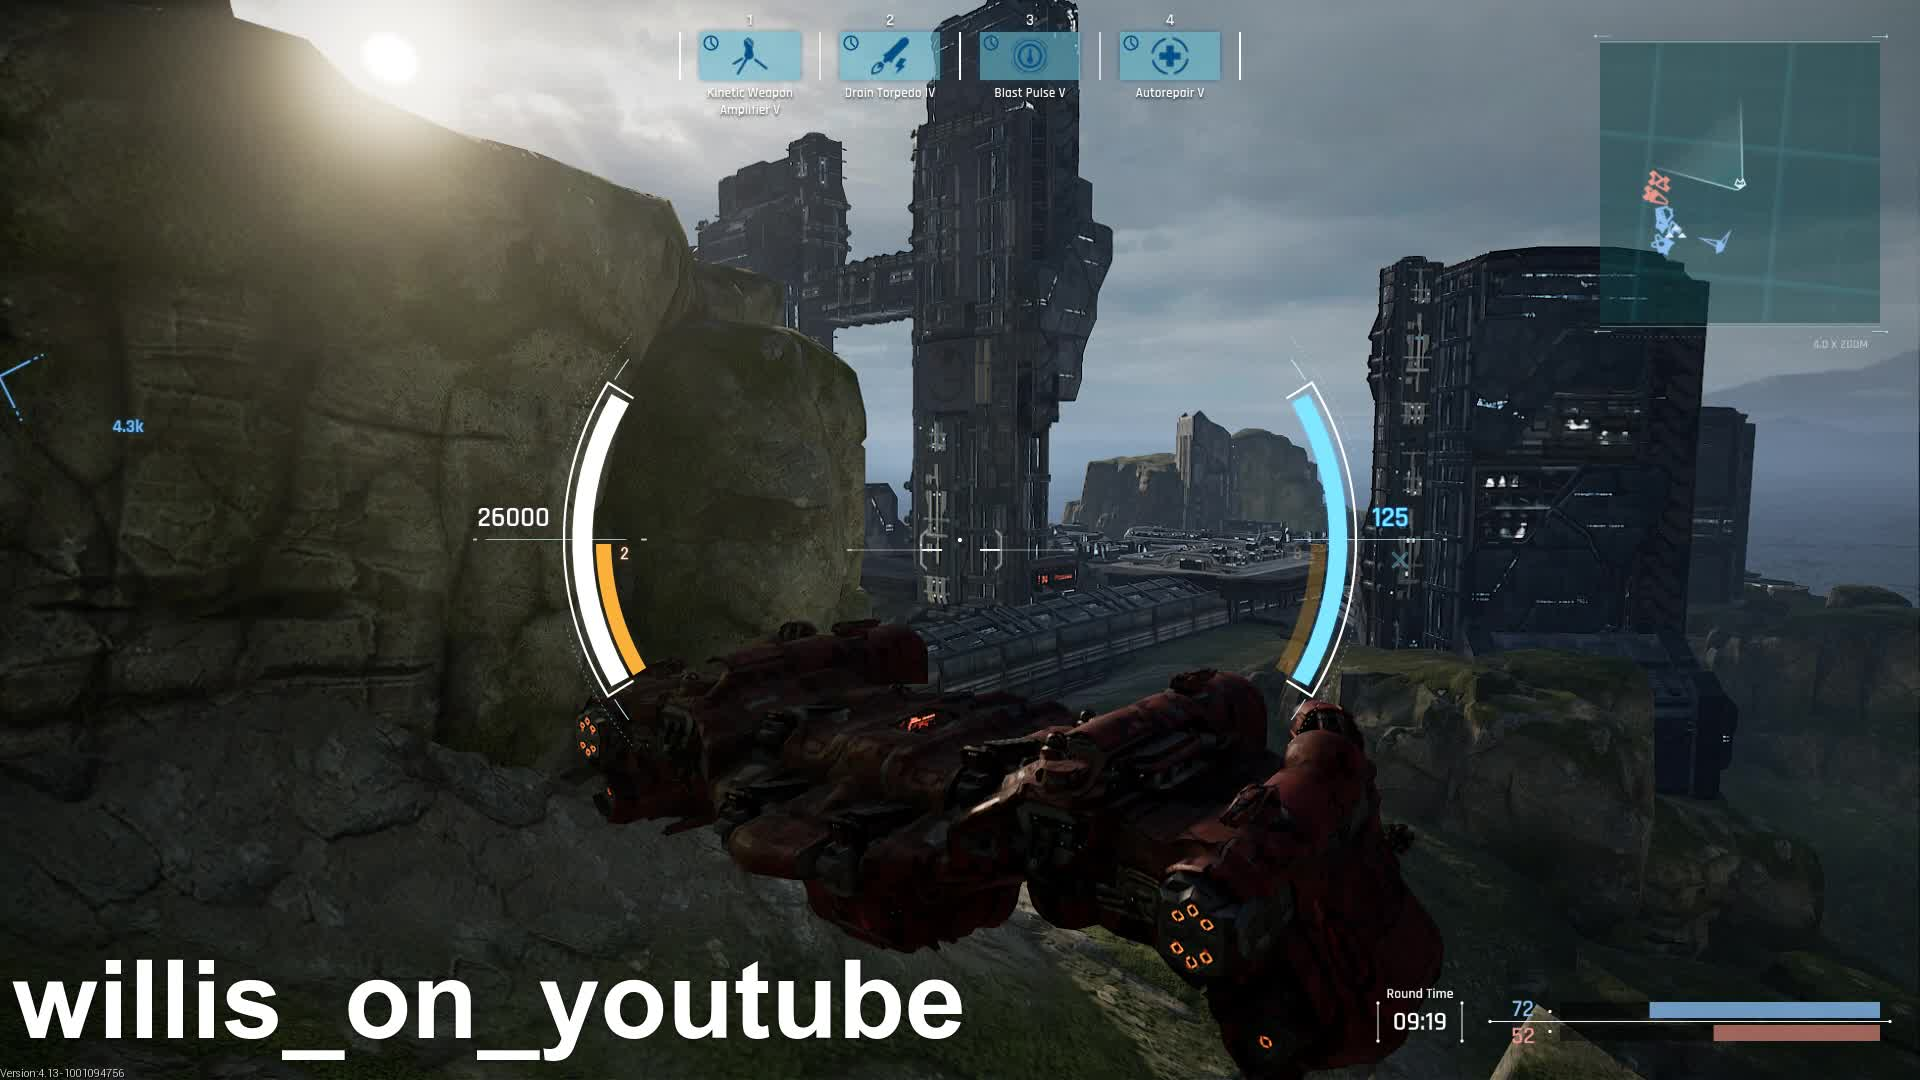 BeAmazed, Deal With It, Dreadnought, Gamephysics, Gaming, HoldMyRedbull, JusticeServed, NeverTellMeTheOdds, PC, Popular, Trending, Willis, Yolo, Dreadnought - Proper handling of the Triple-Tac Ball GIFs